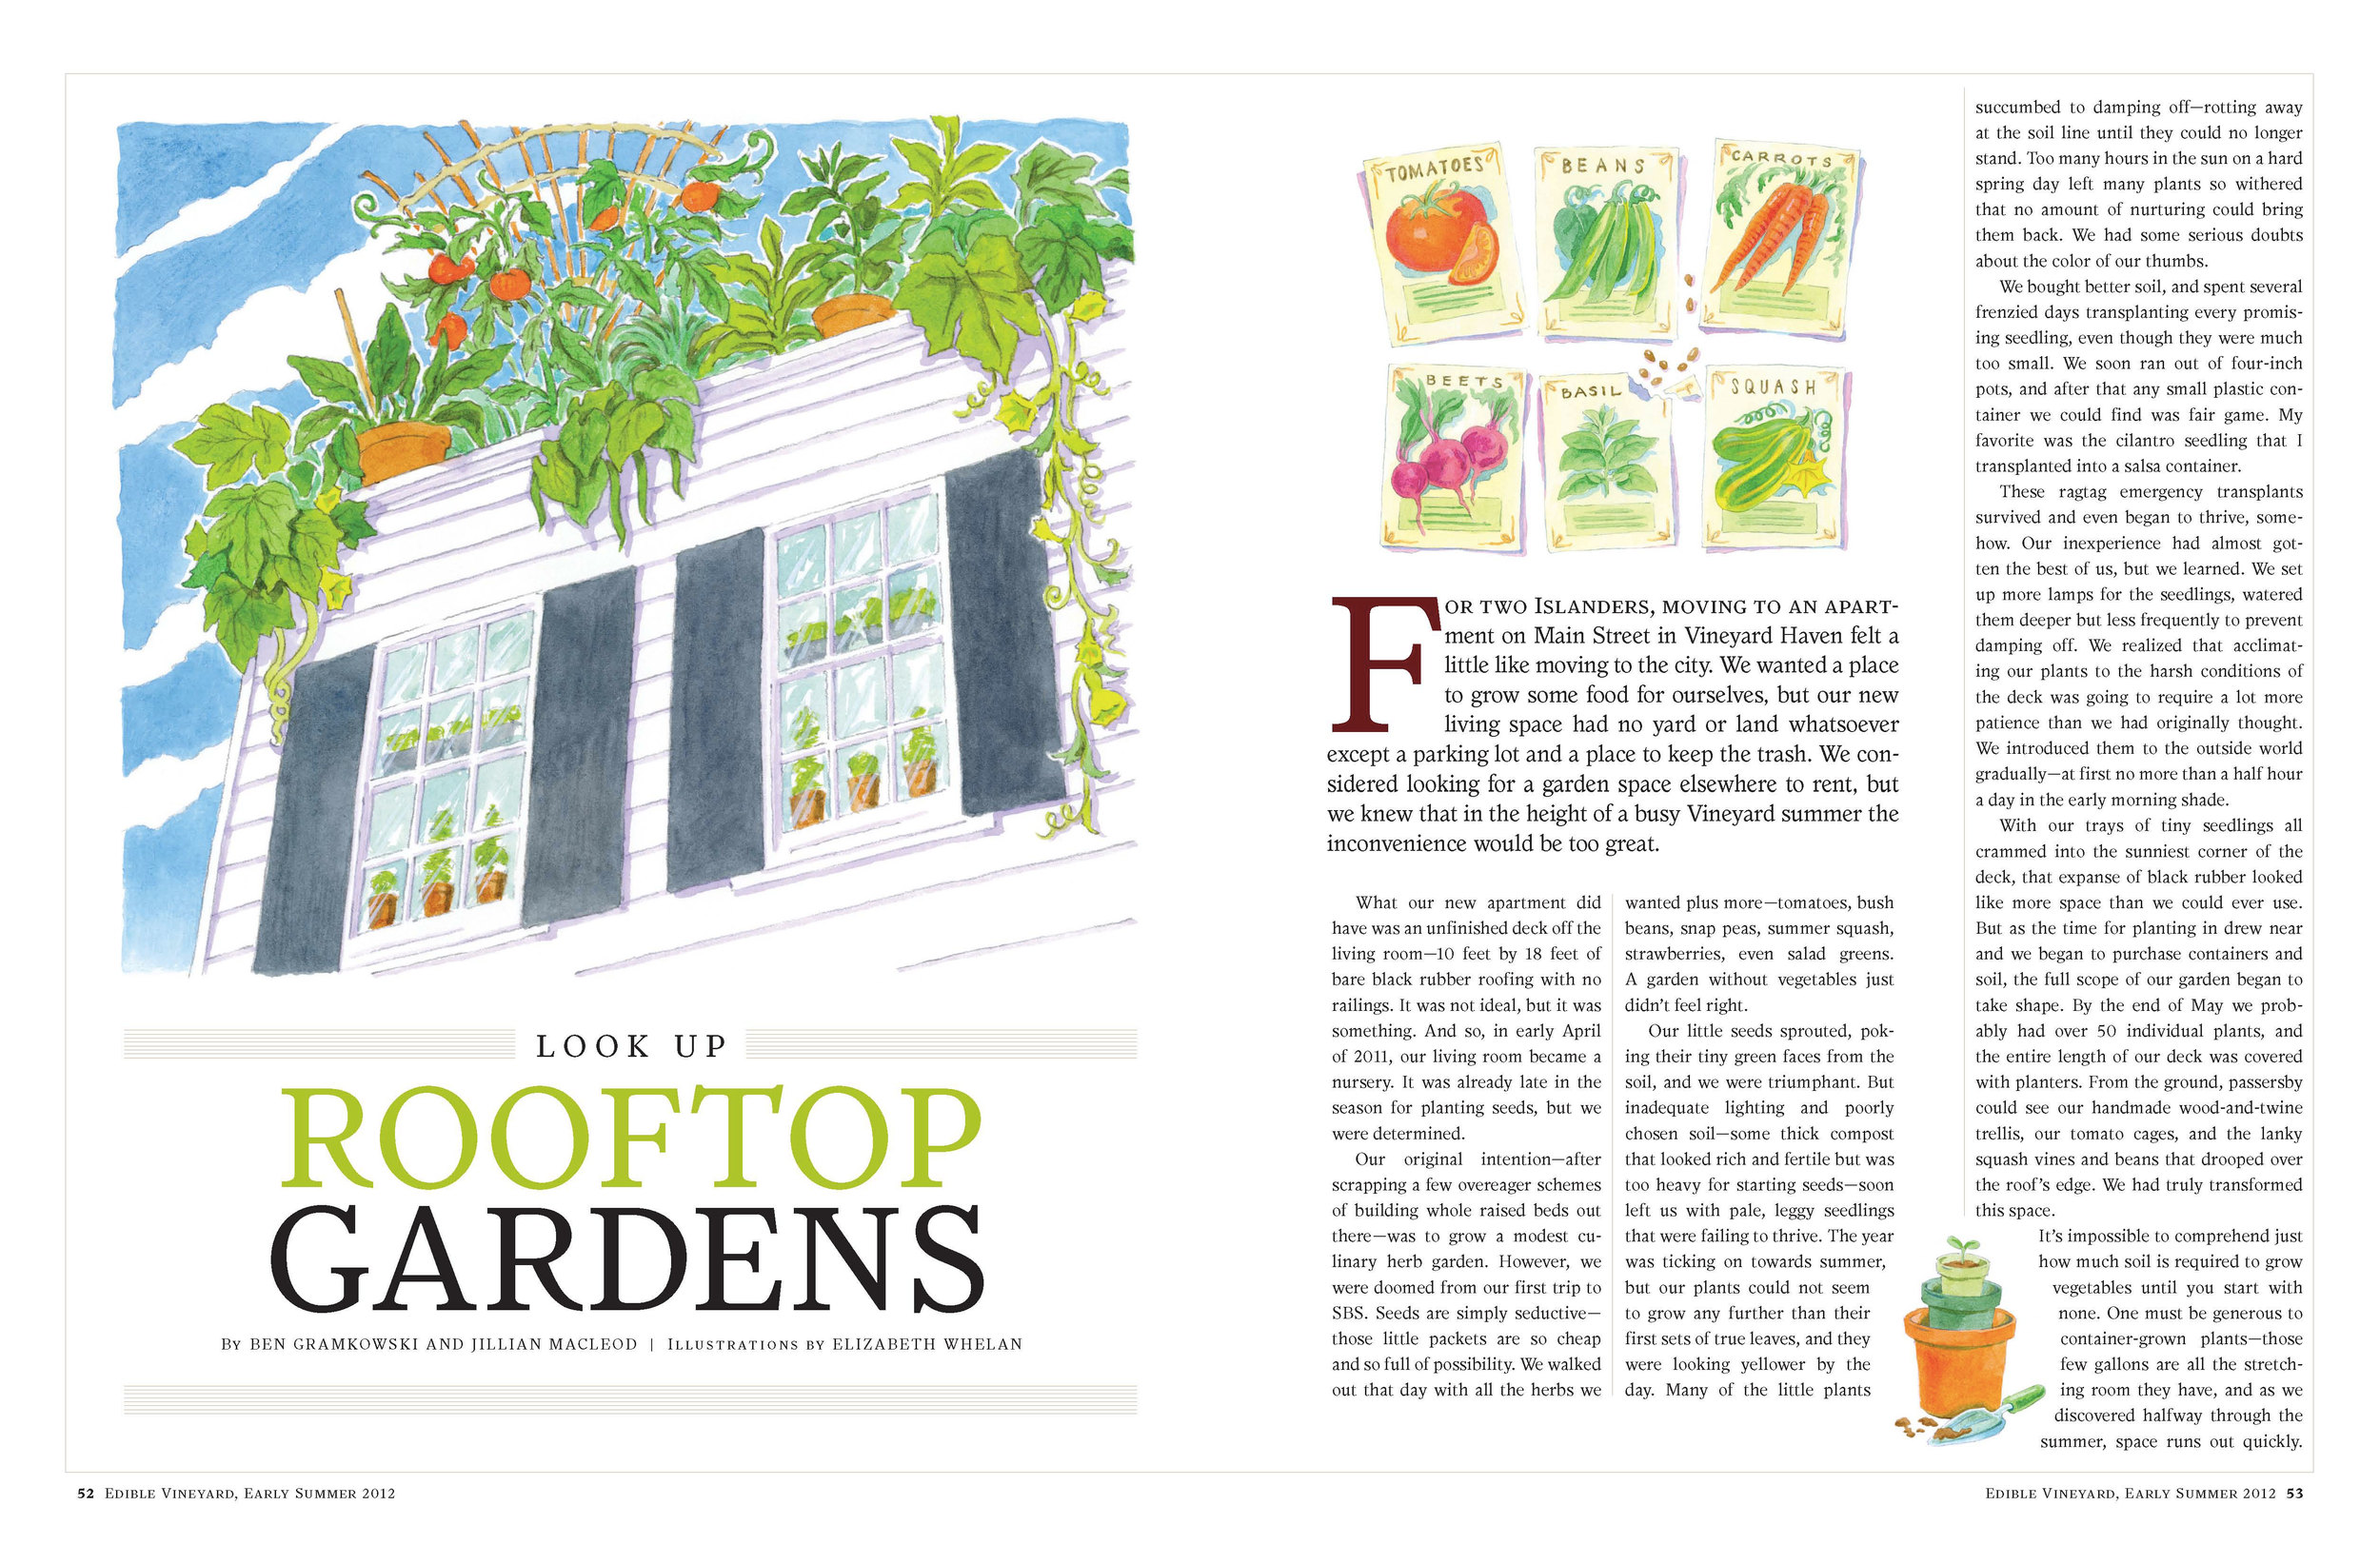 Rooftop Gardens feature opening spread